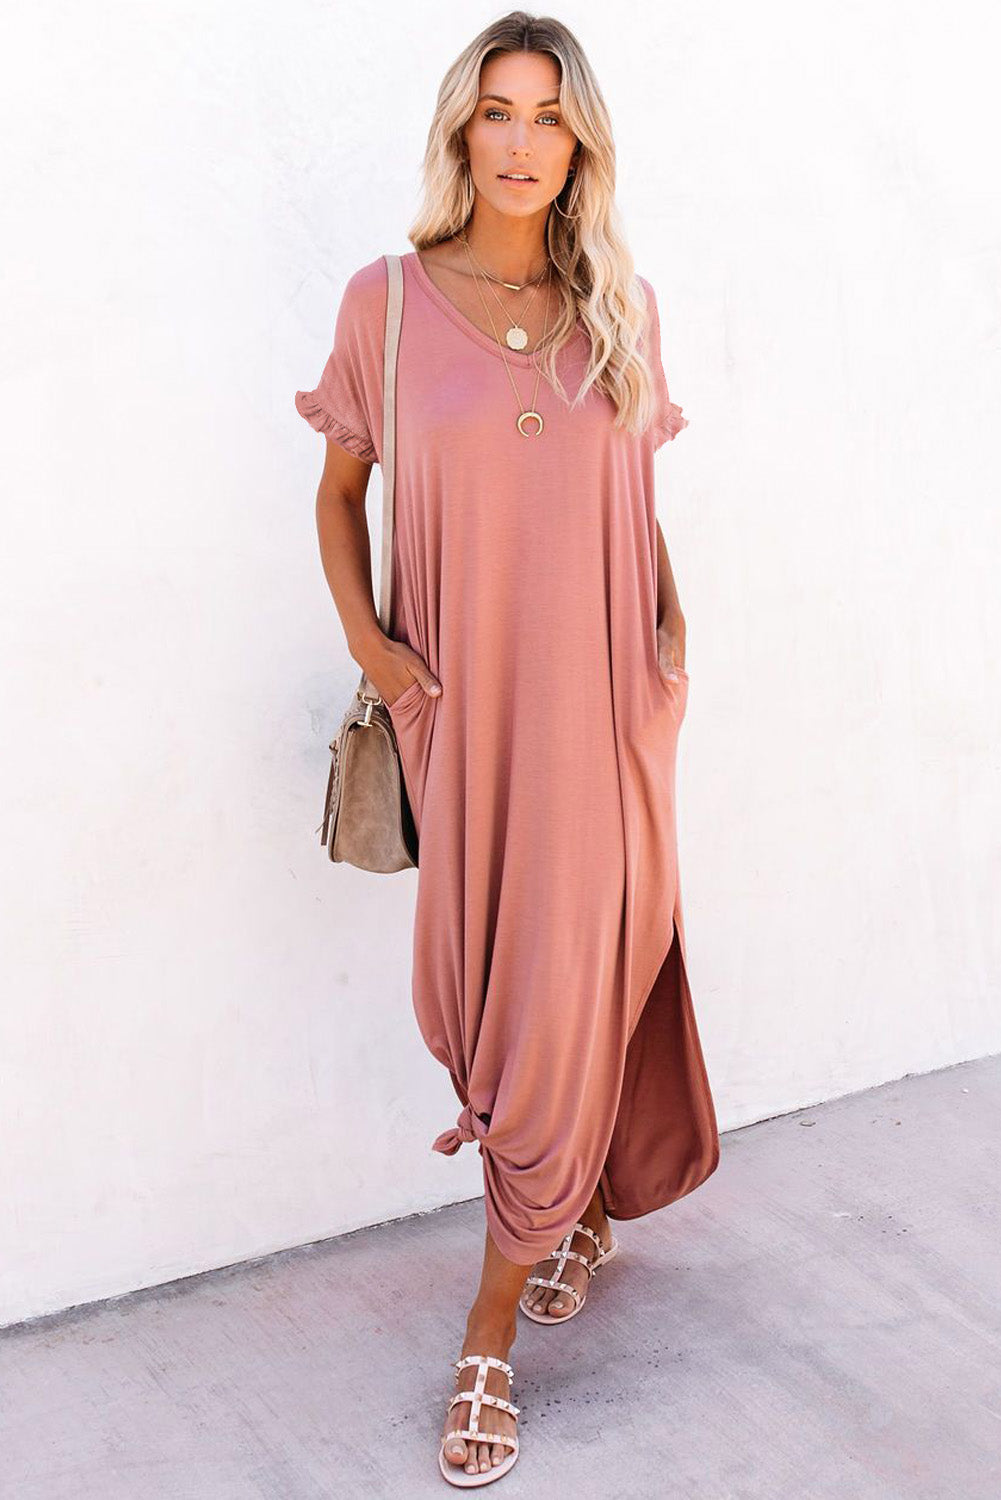 Pink Loose Fit Cotton Blend V Neck Maxi Dress with Slits Maxi Dresses Discount Designer Fashion Clothes Shoes Bags Women Men Kids Children Black Owned Business